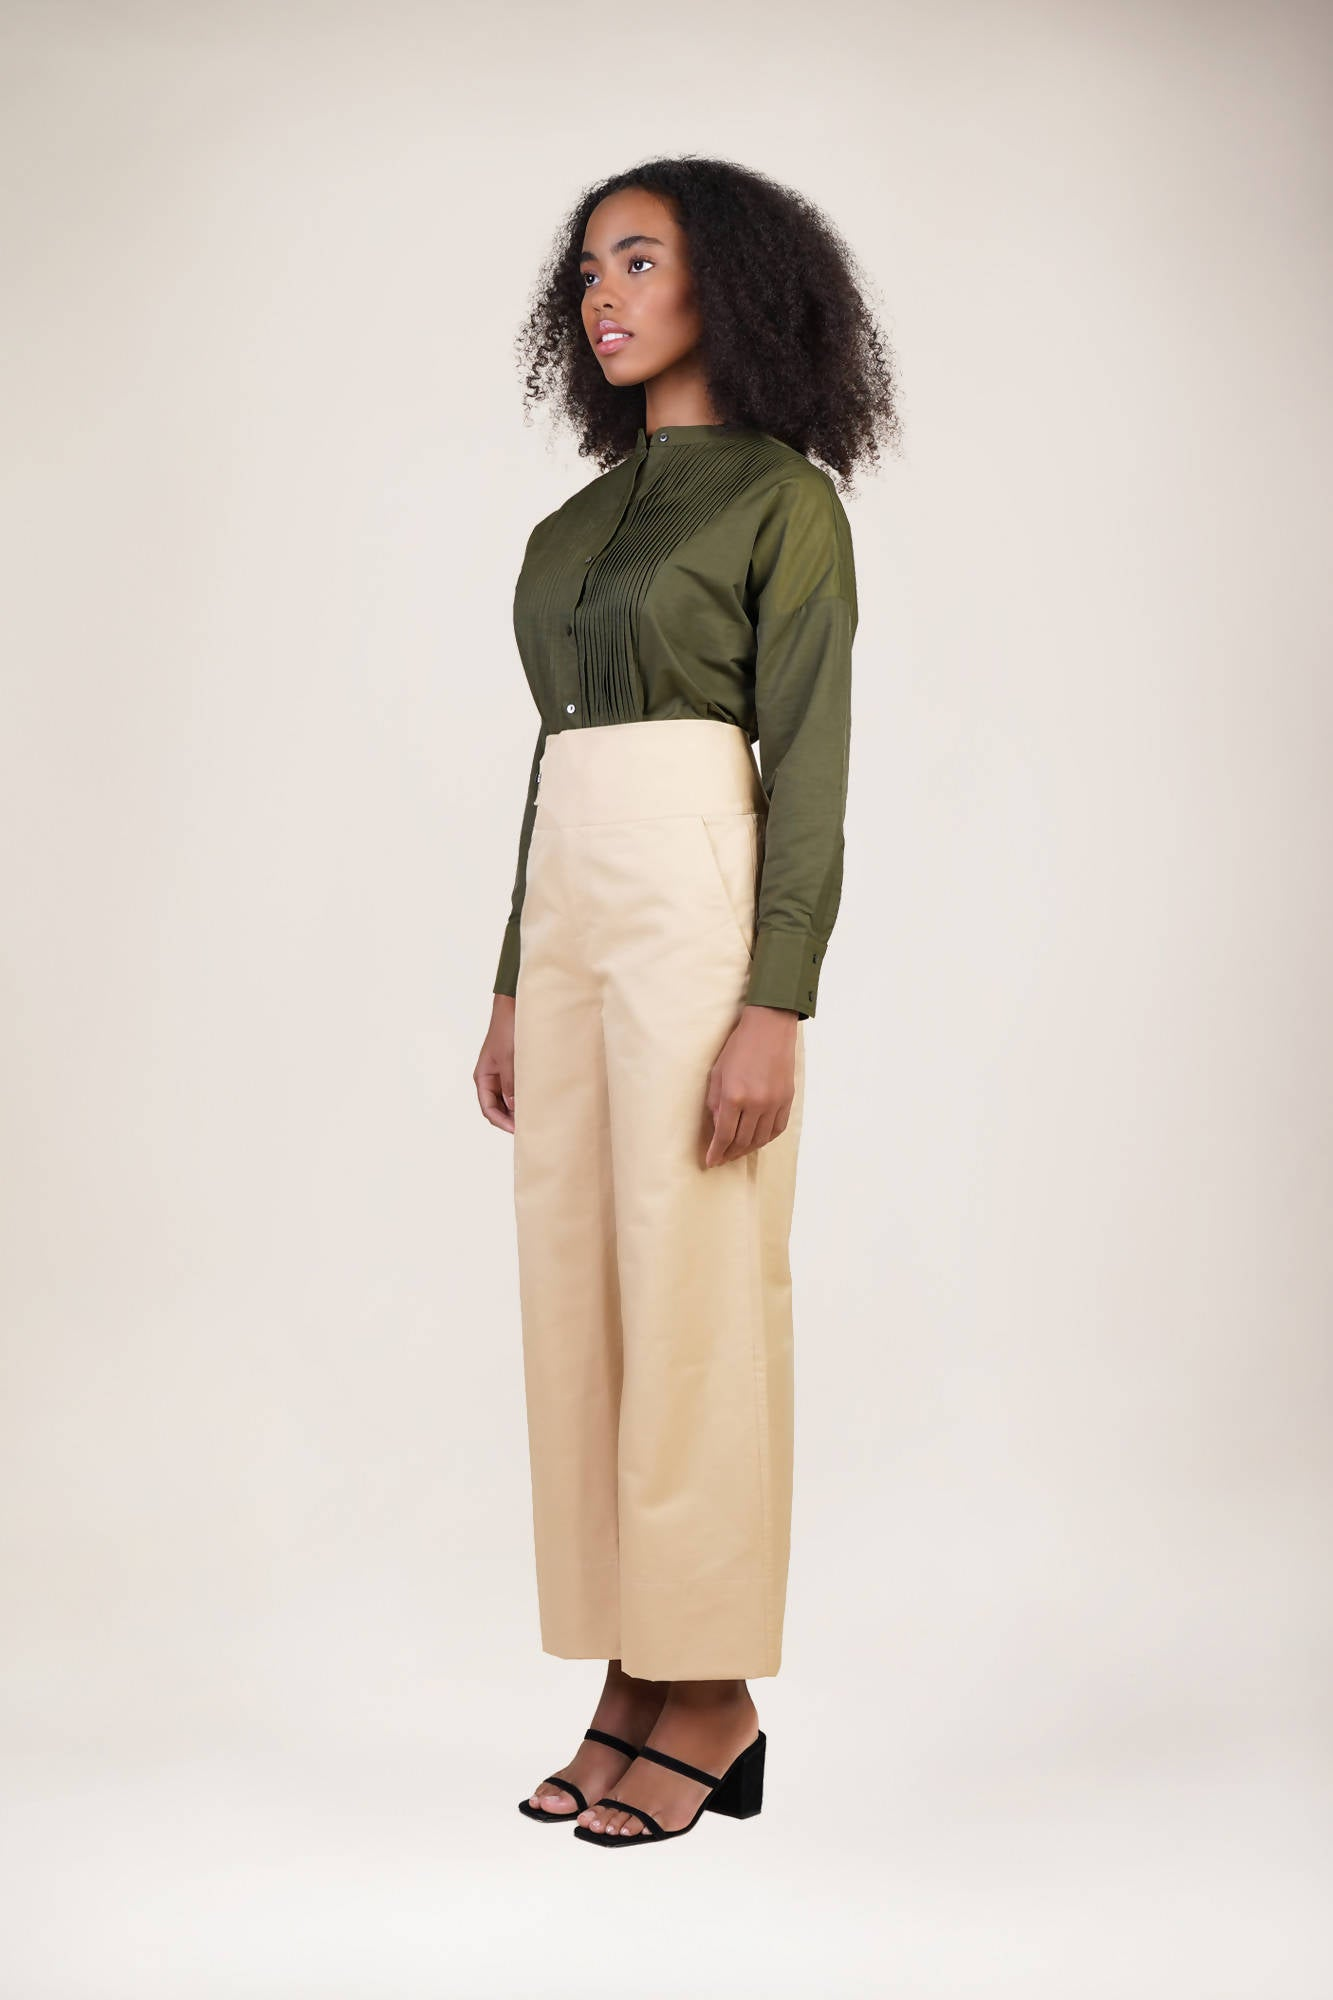 Arezzo Top in Olive